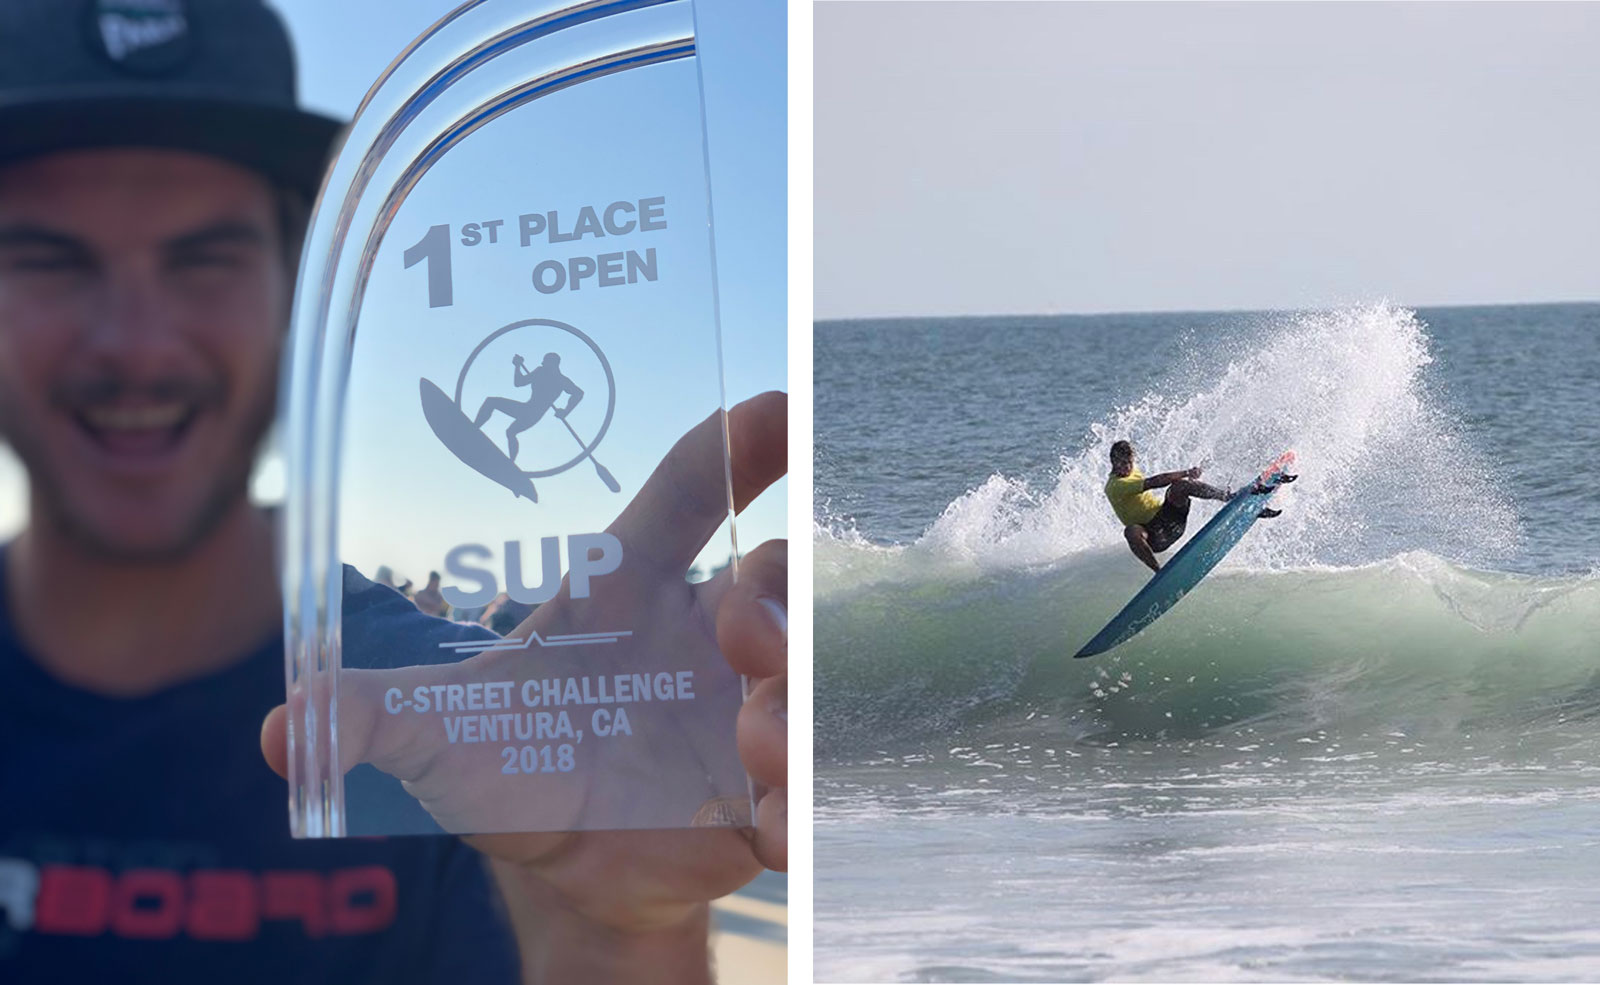 Zane's-Double-Win-at-the-Ventura-Paddlesurf-and-Hydrofoil-Championships-air-1600